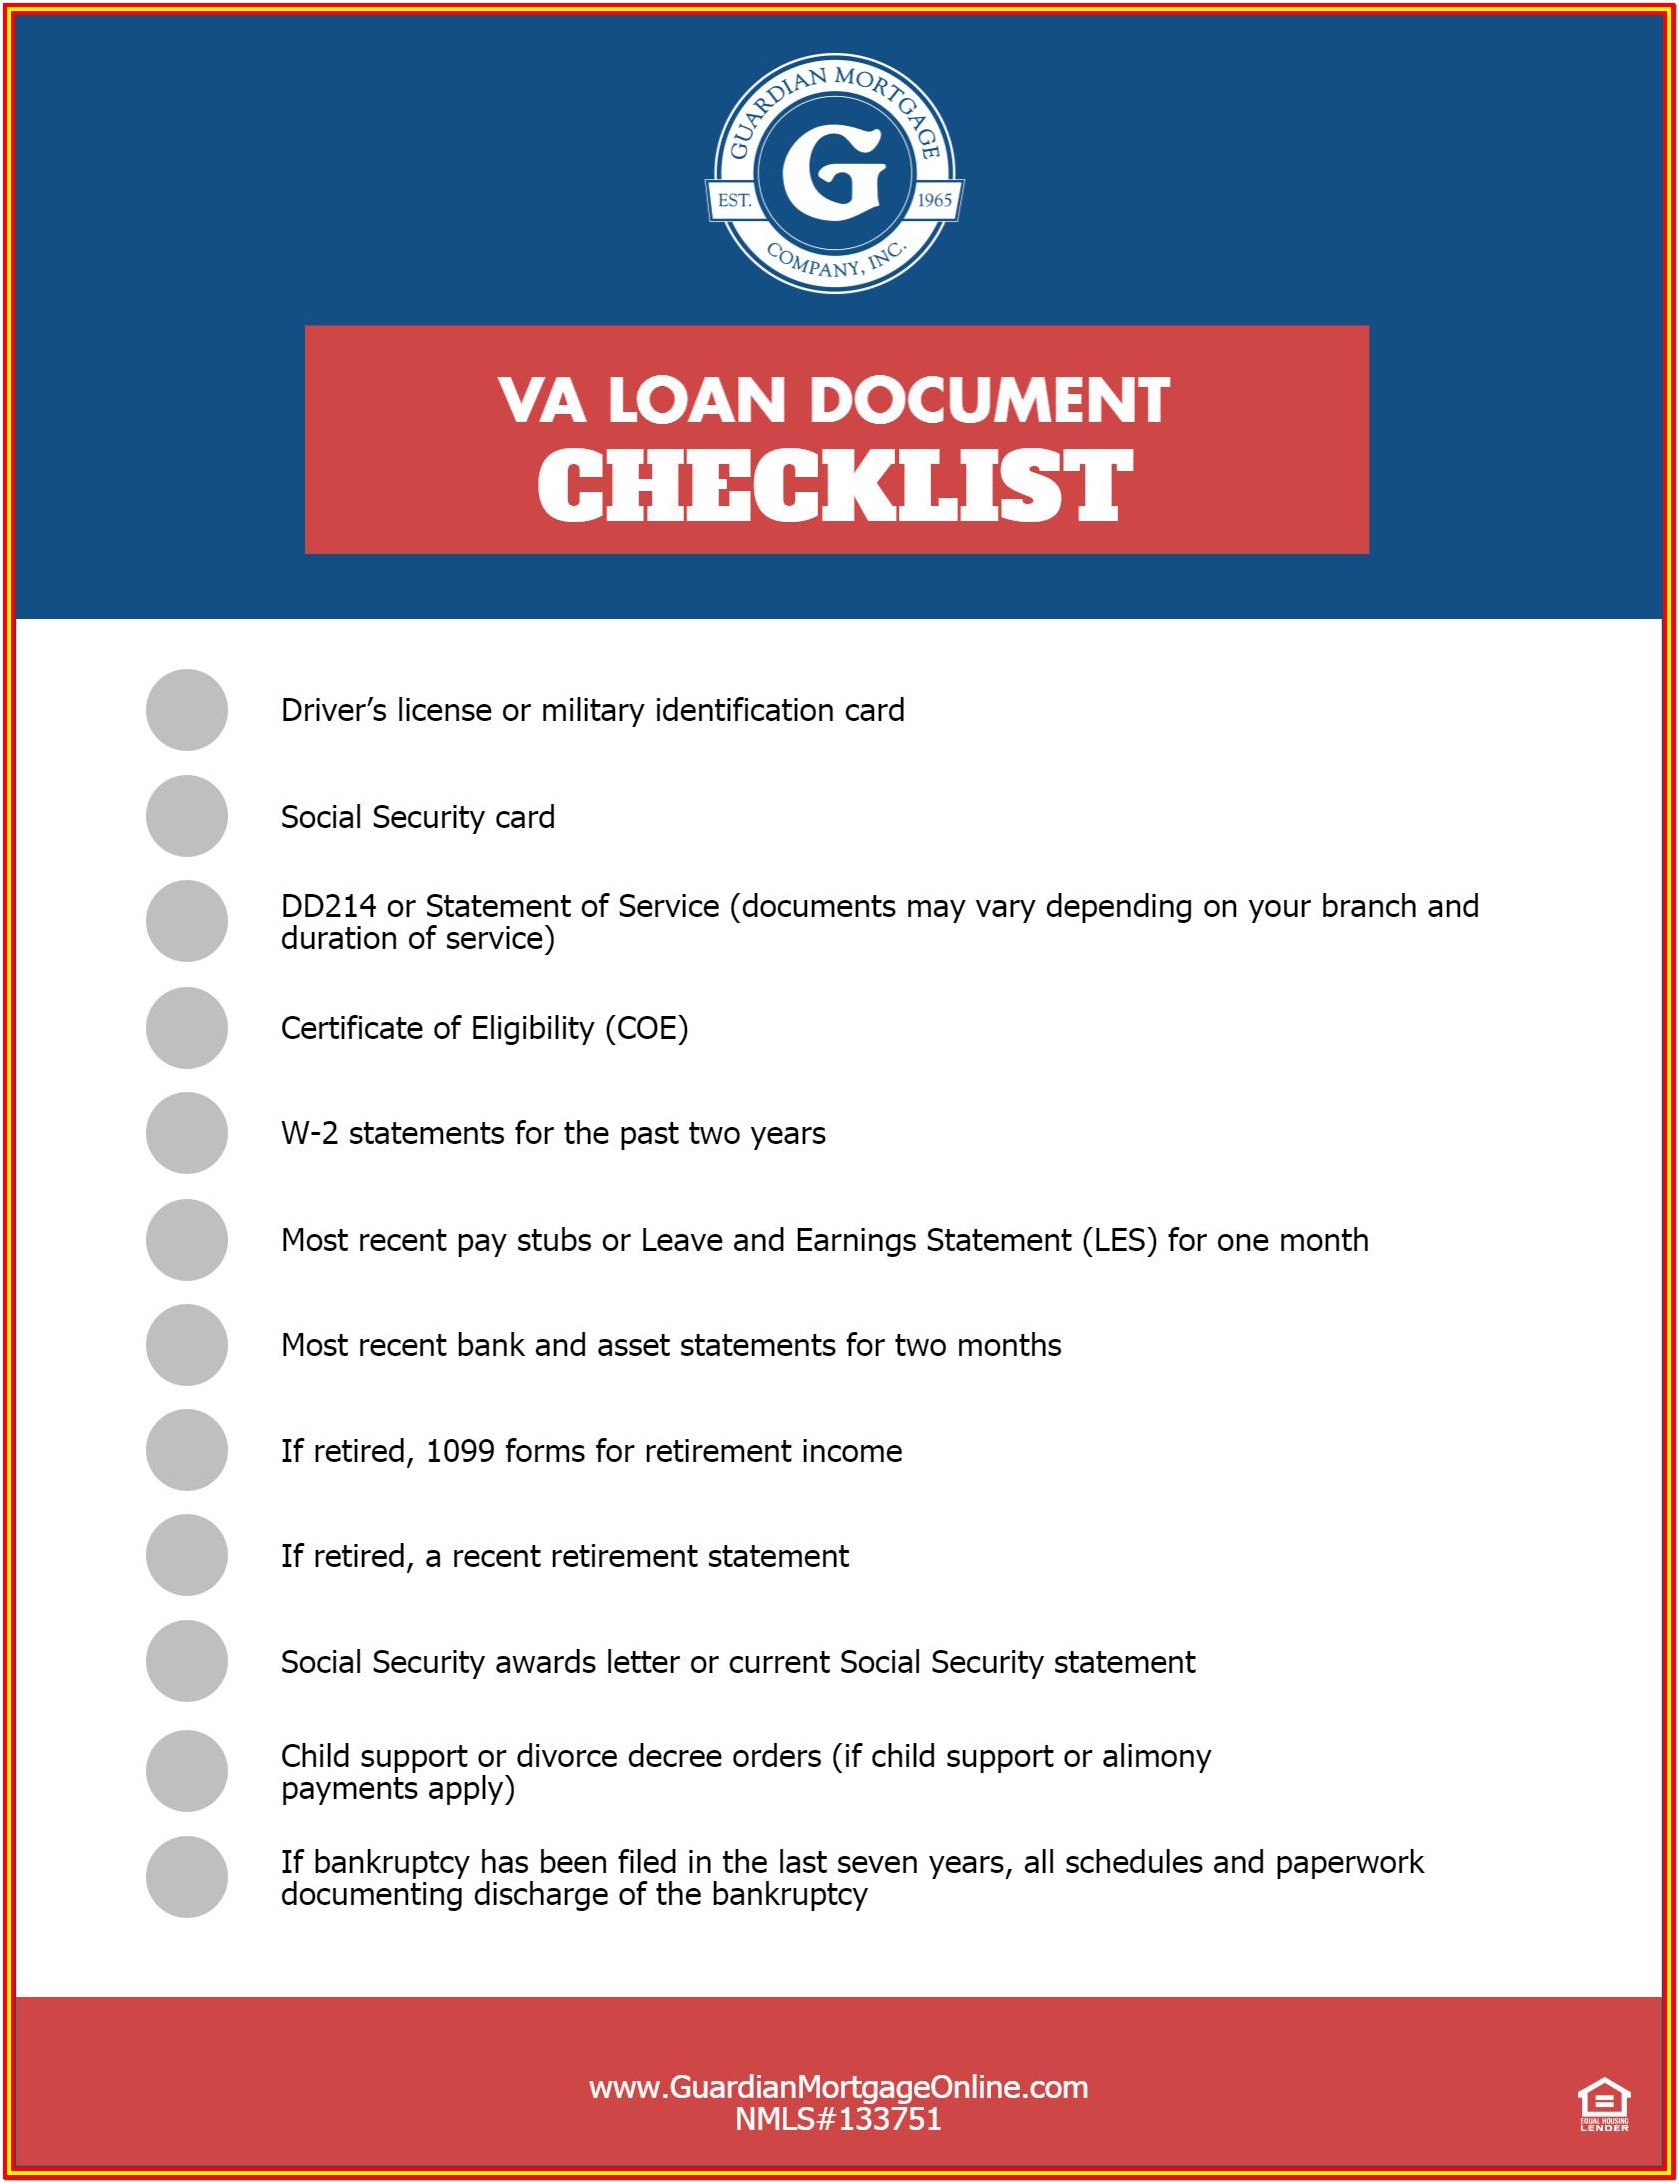 Home Inspection Checklist For Va Loans